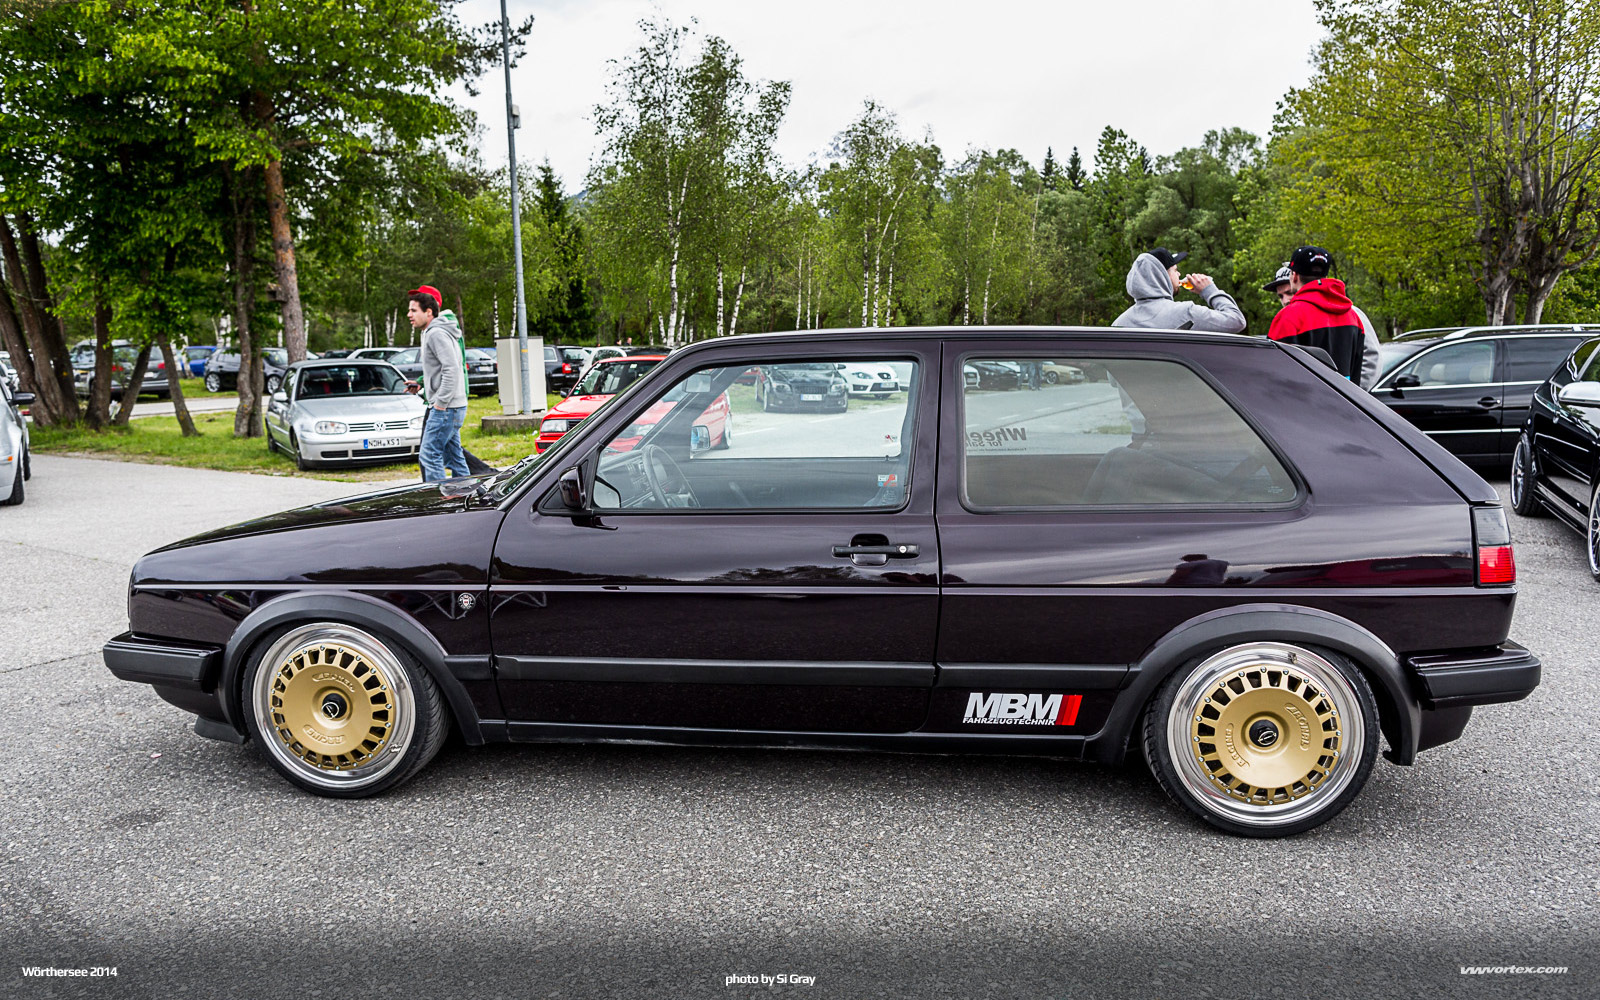 worthersee-2014-dayfour-si-gray-413